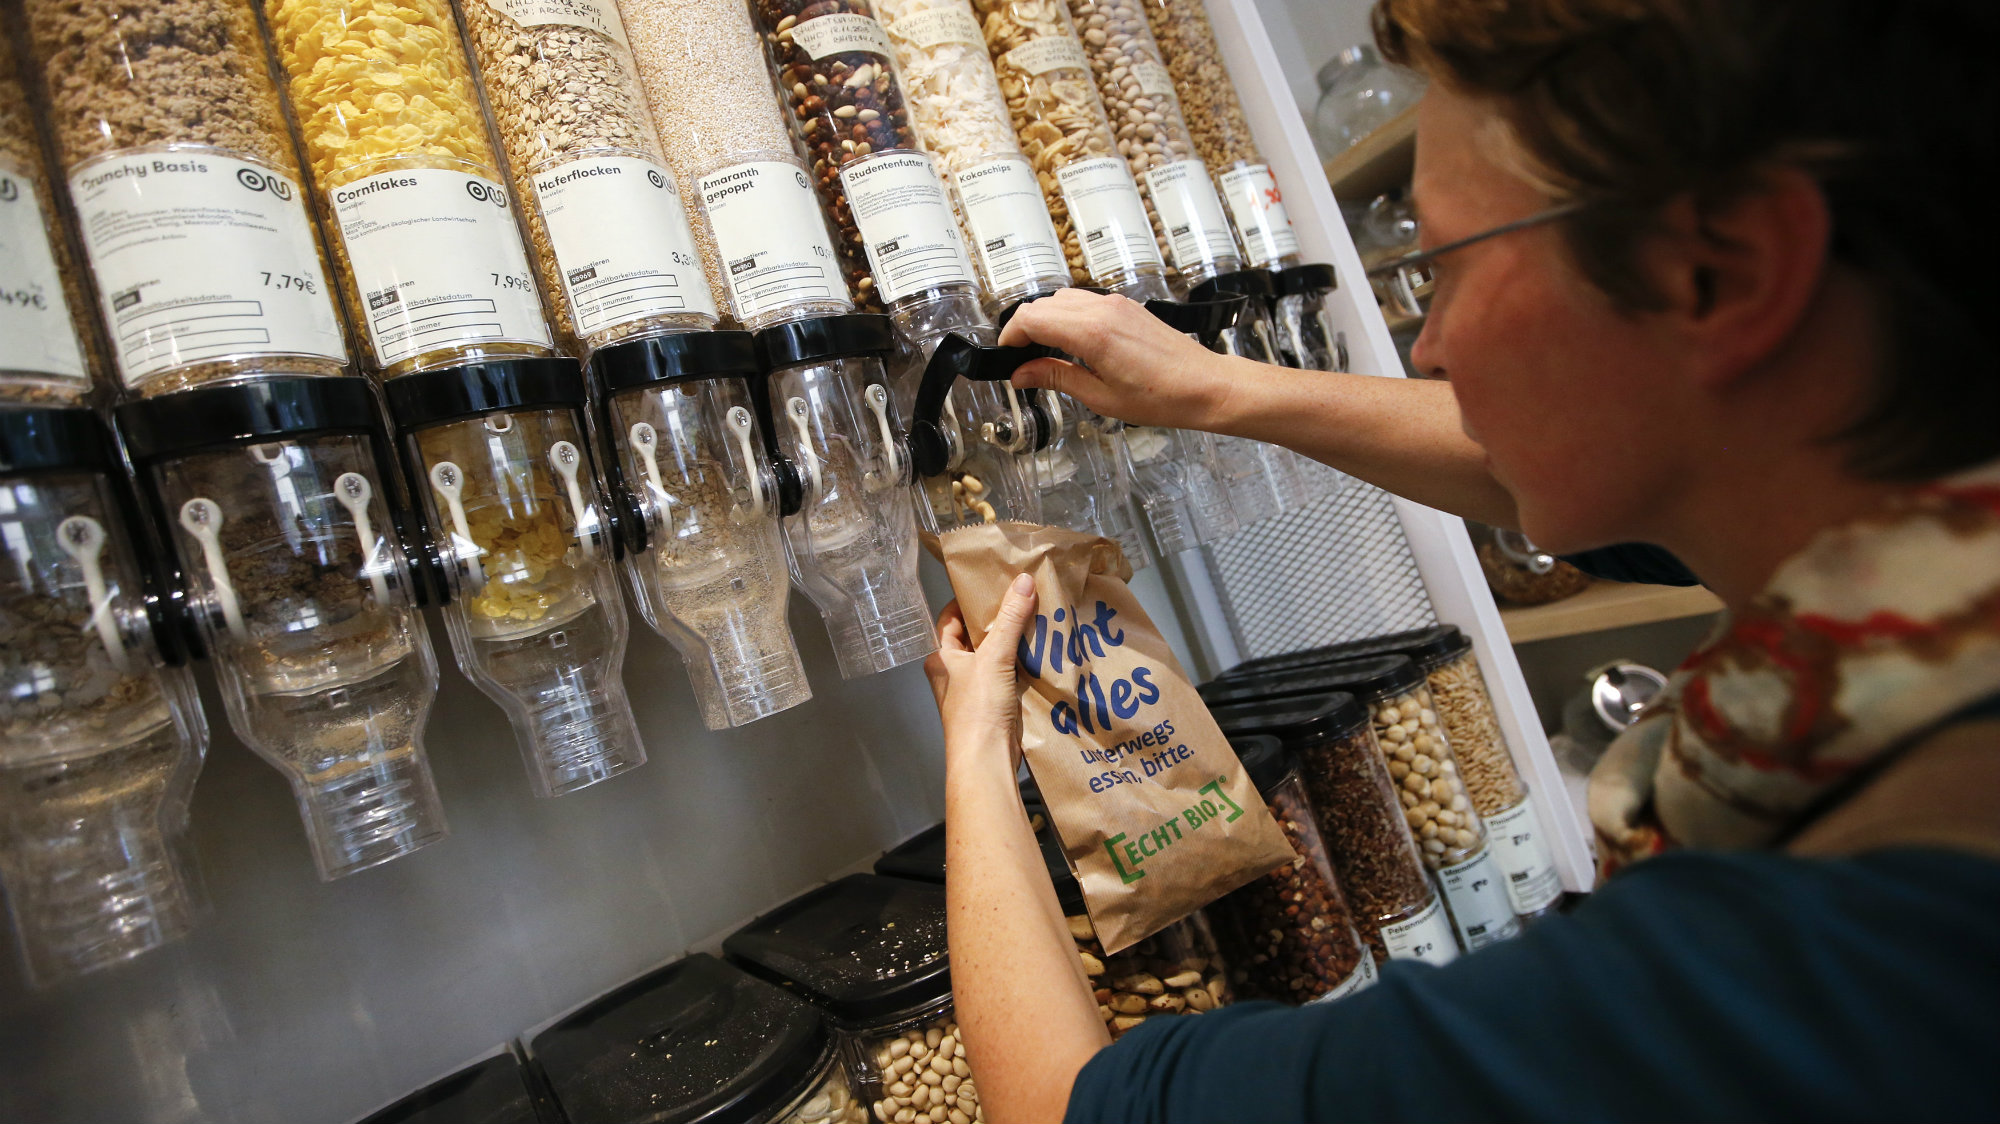 A customer fills up a bag with nuts at a grocery store in Berlin.